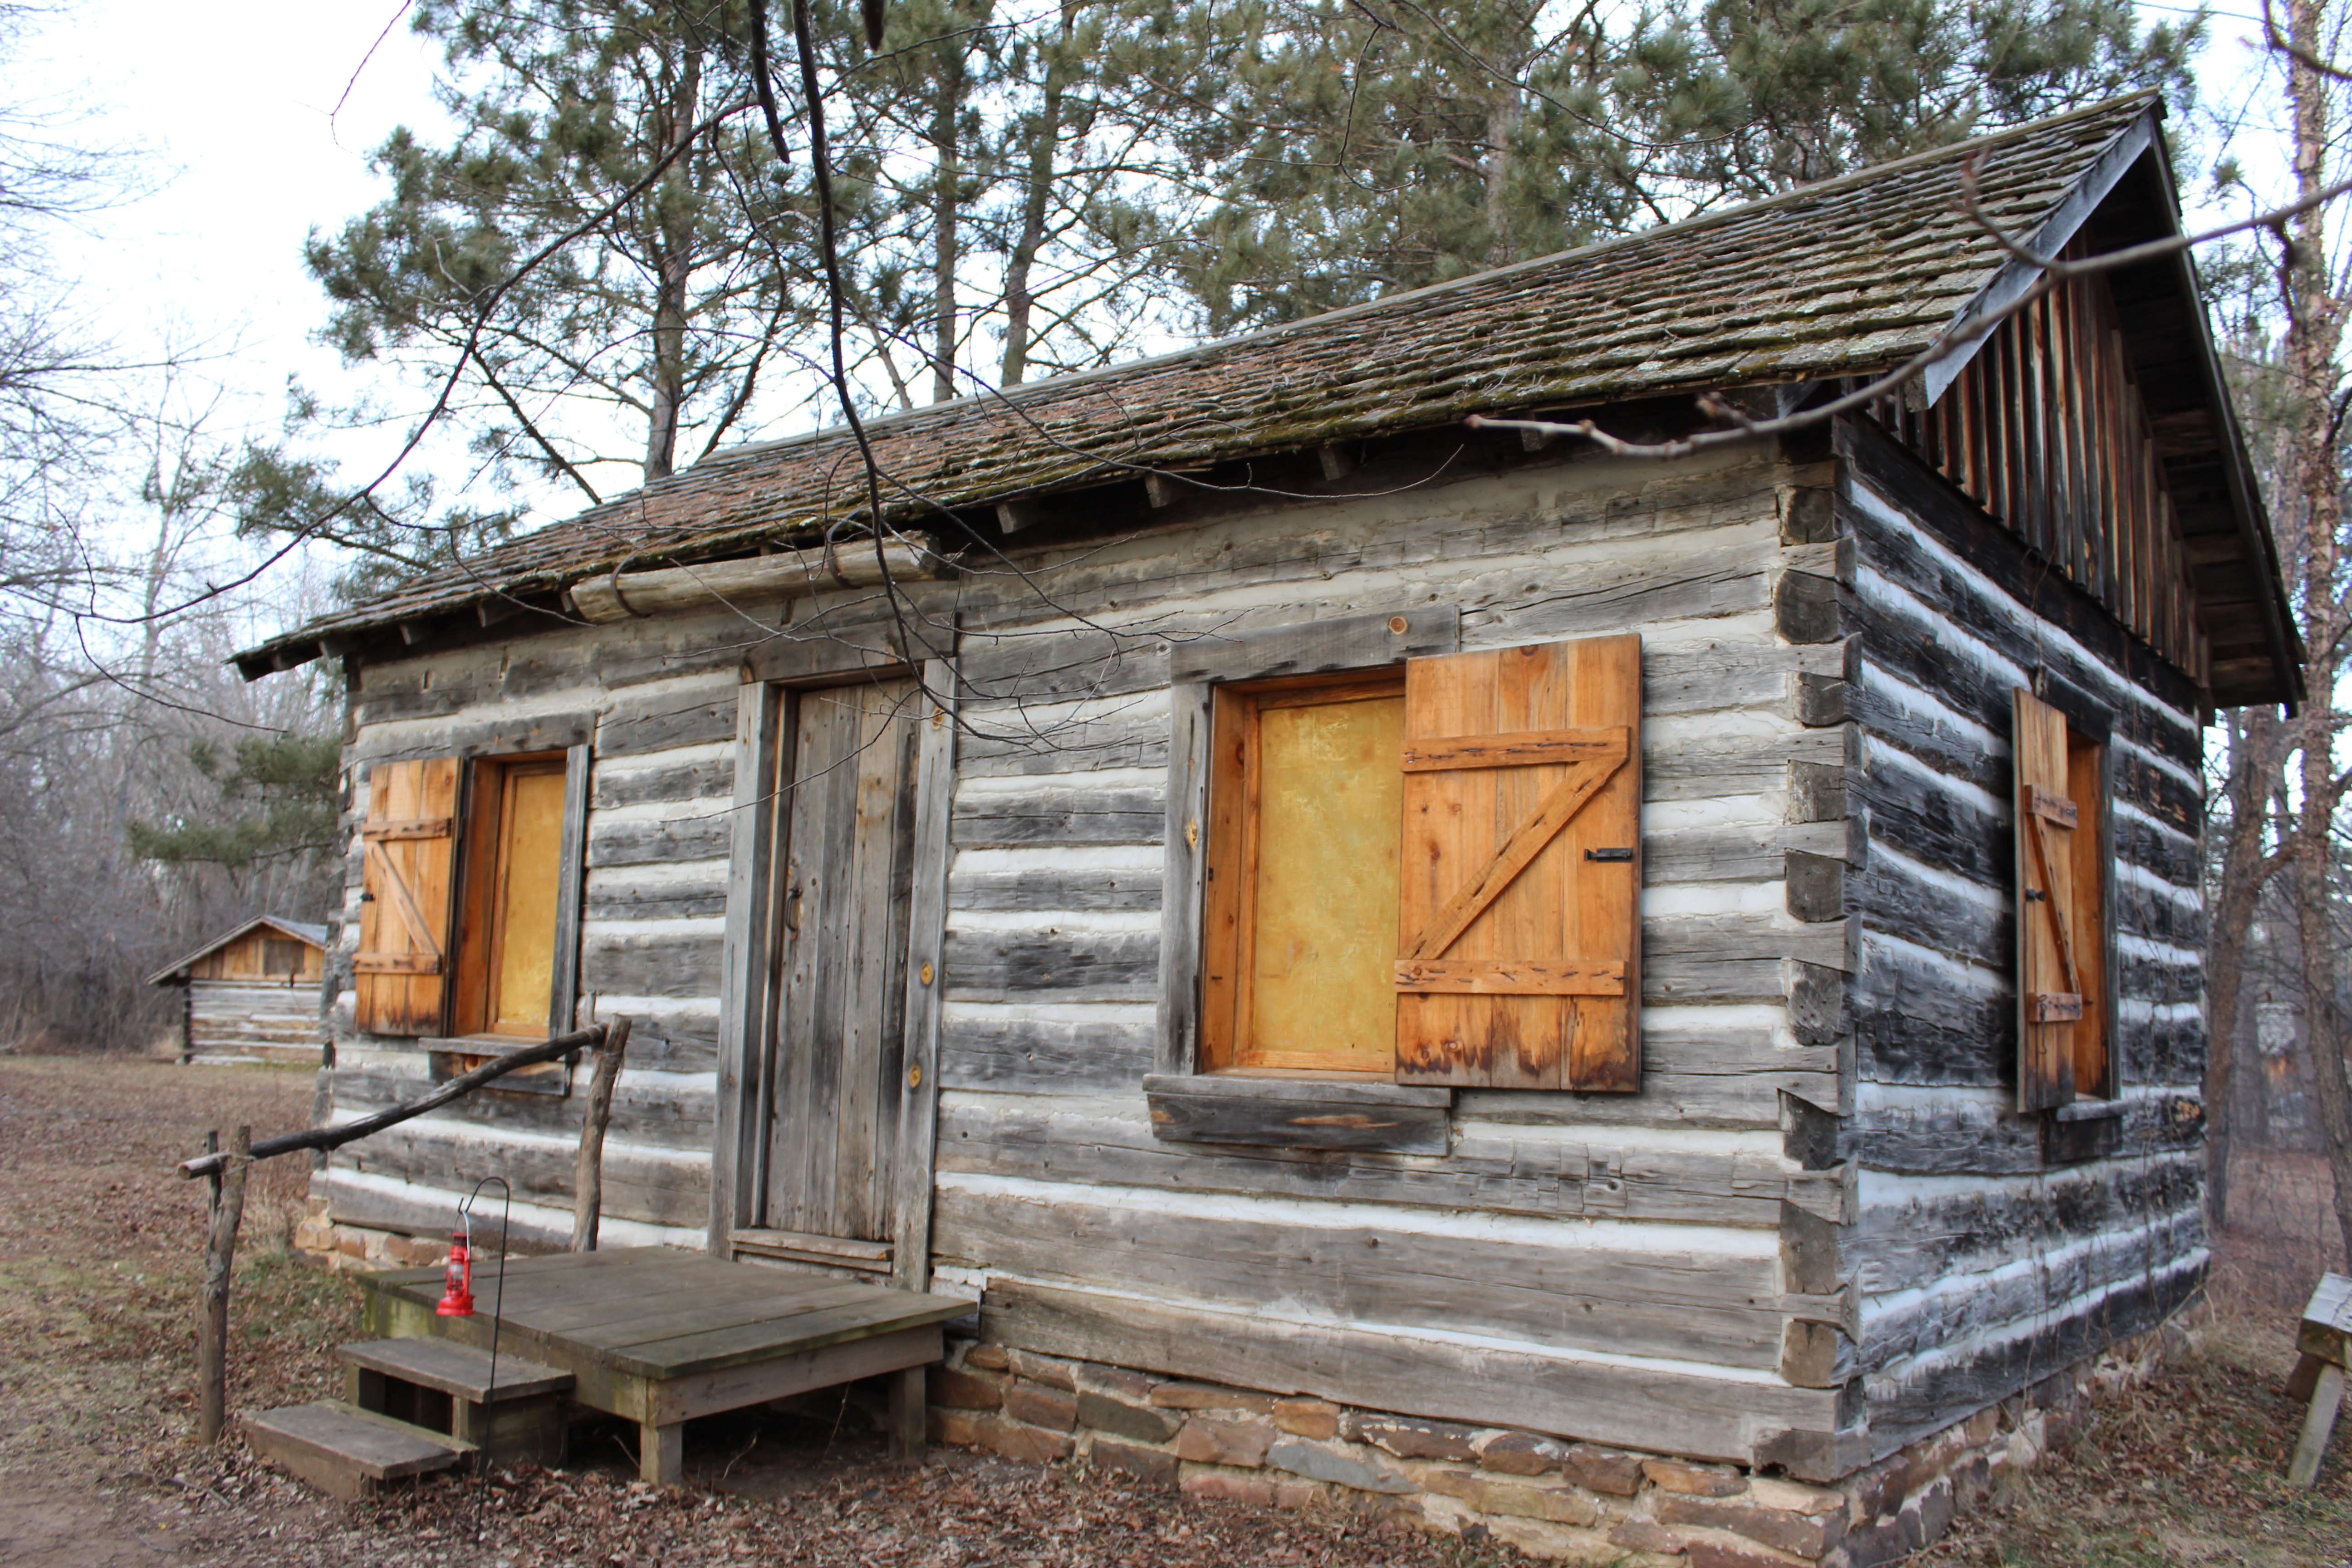 One of many cabins on the Historic Point Basse site. (City Times Photo)